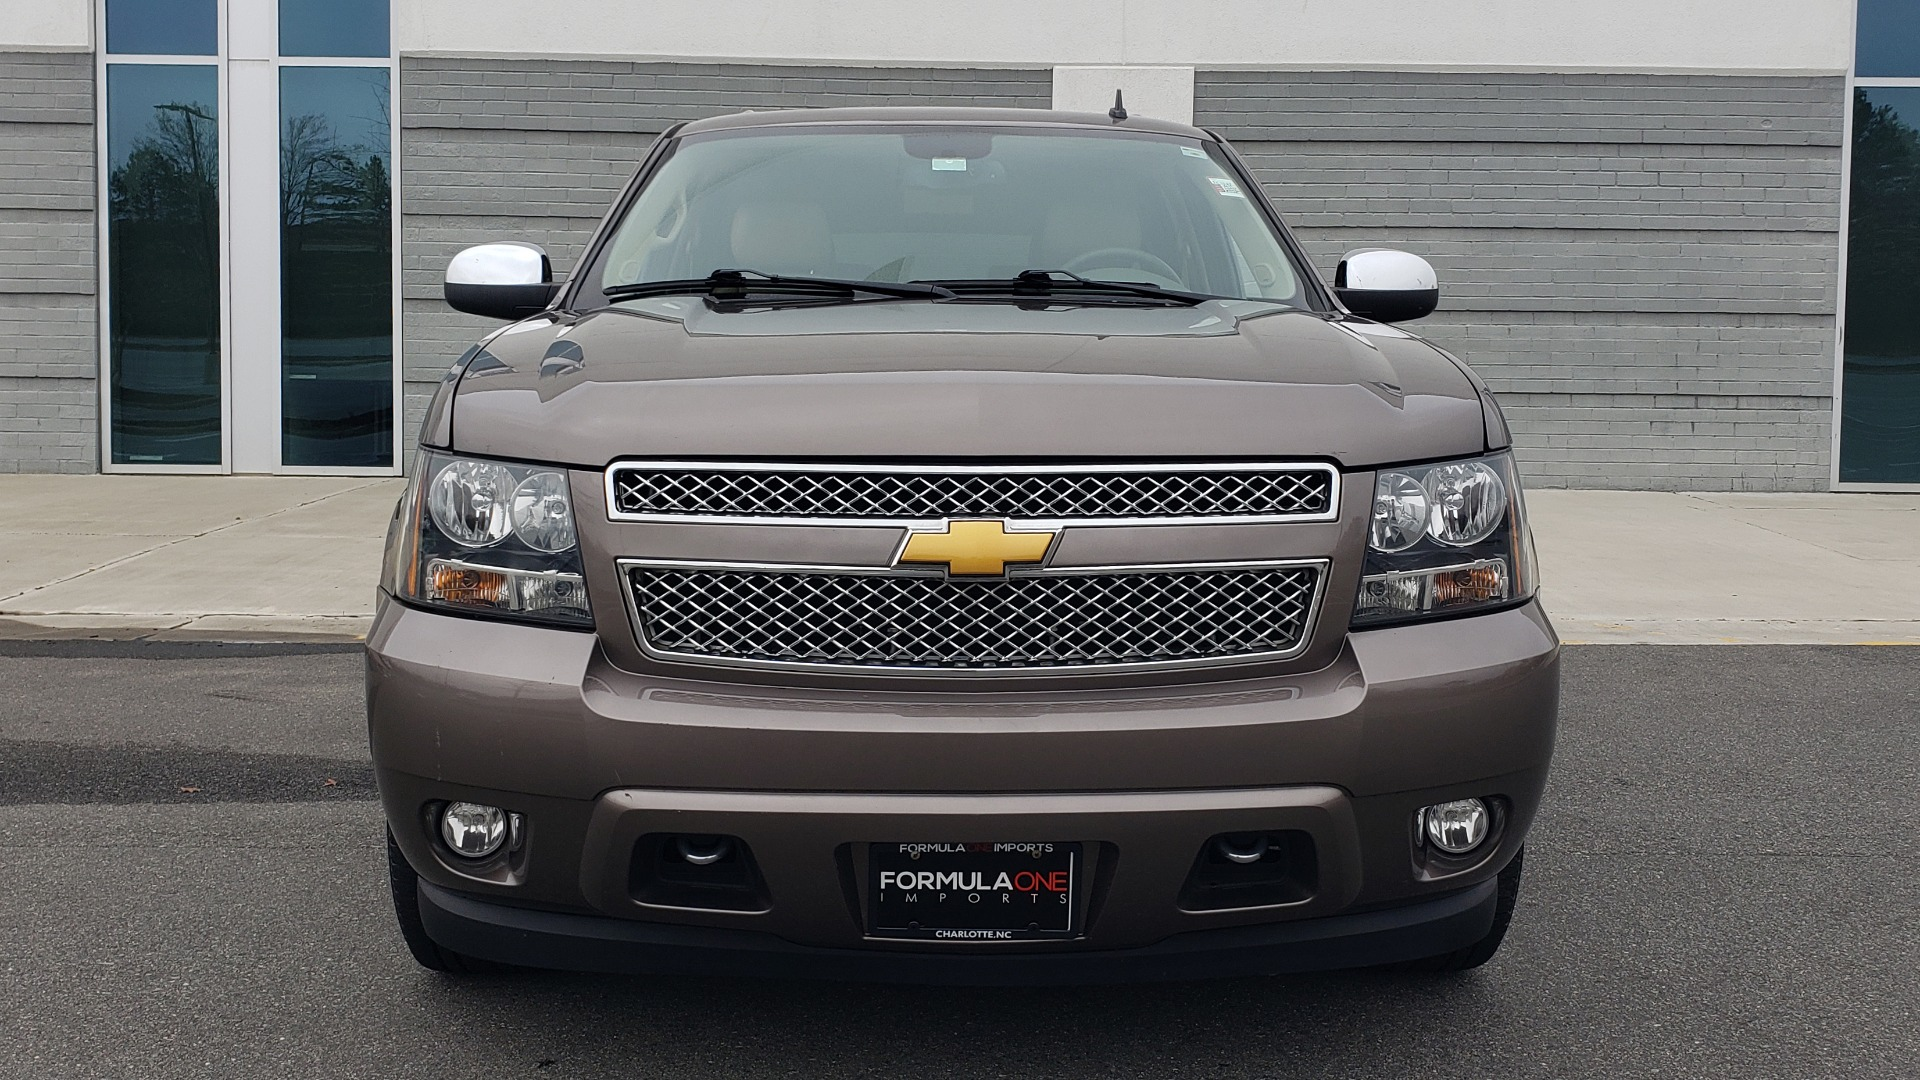 Used 2014 Chevrolet SUBURBAN LTZ / 4WD / ENTERTAINMENT / NAV / SUNROOF / TRAILER PKG for sale Sold at Formula Imports in Charlotte NC 28227 22